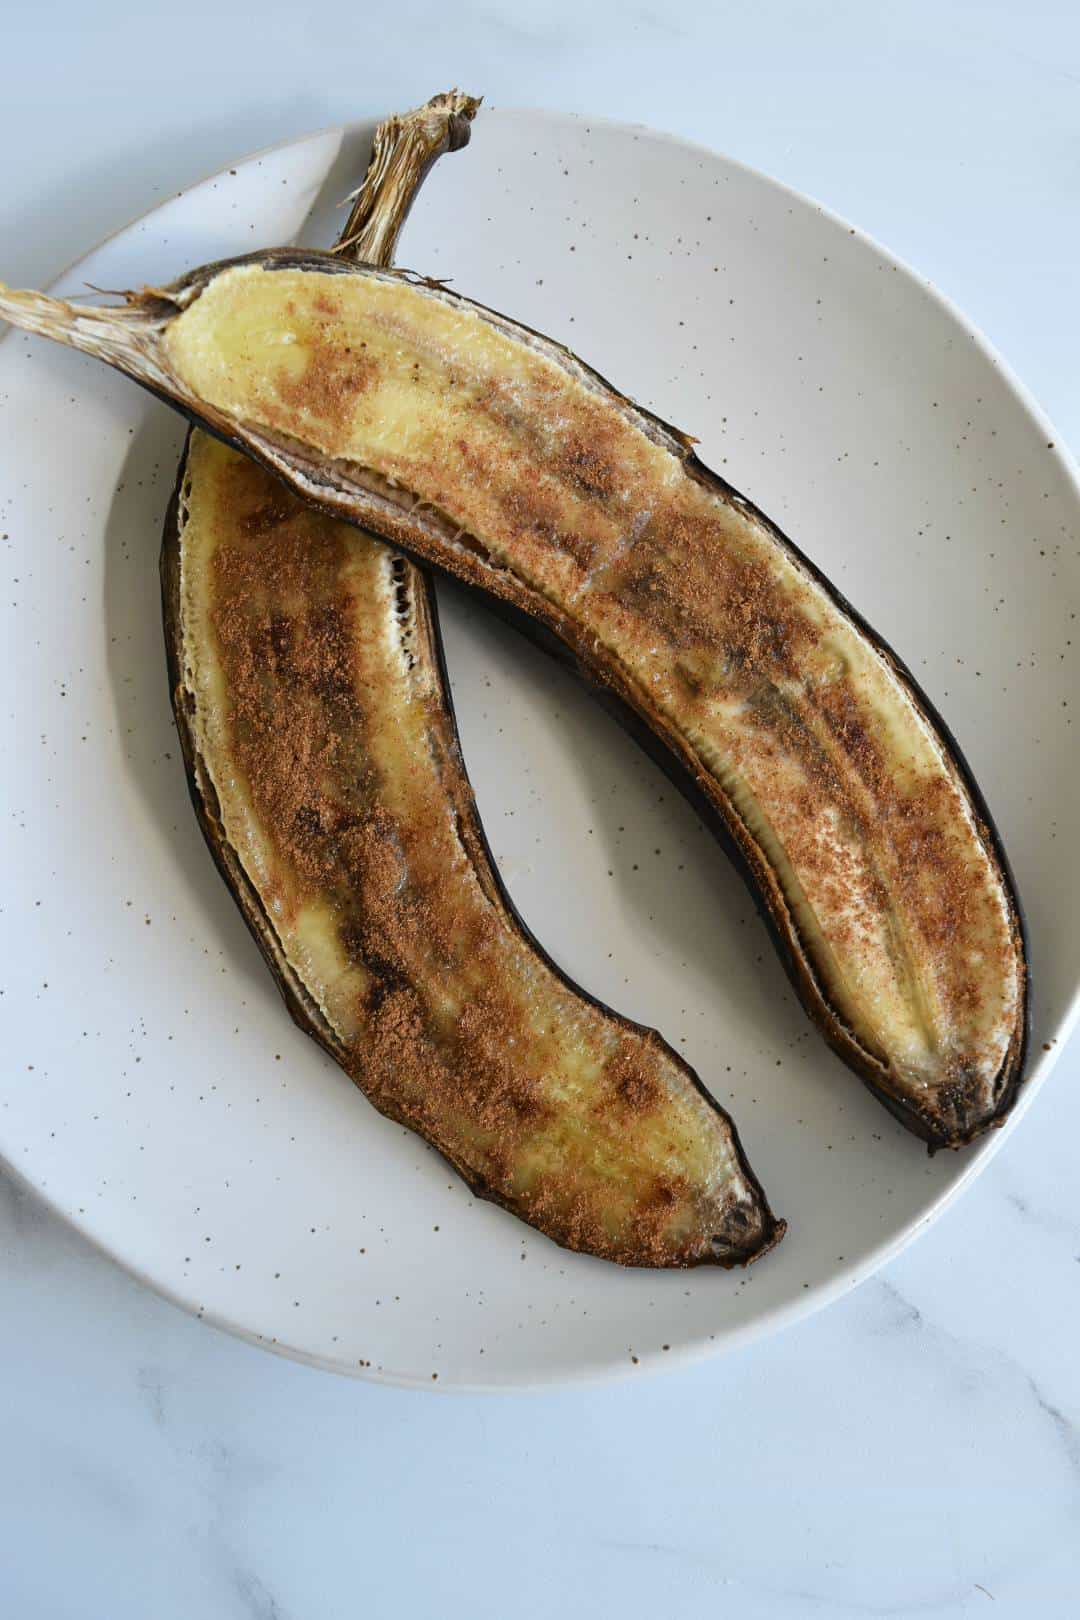 Oven baked bananas on a plate.